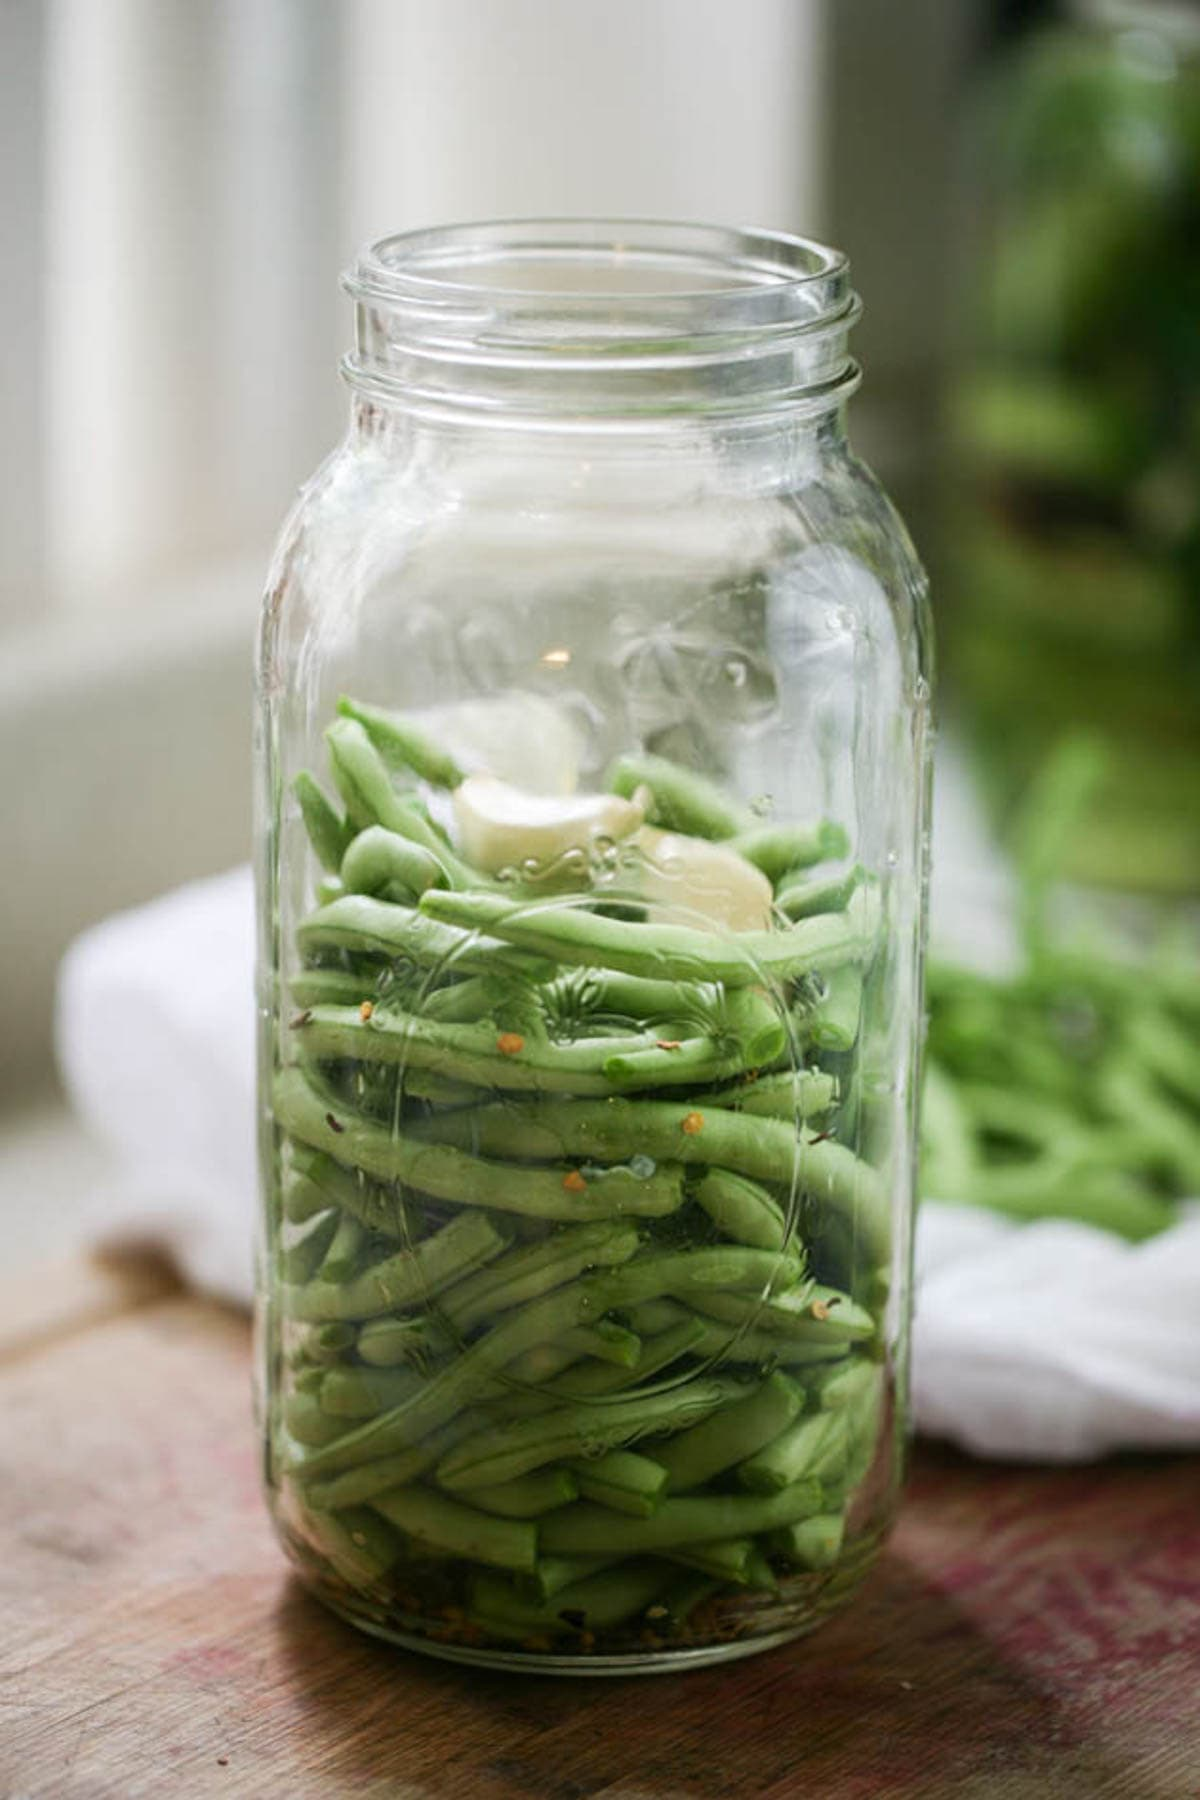 Adding garlic to the jar of green beans.